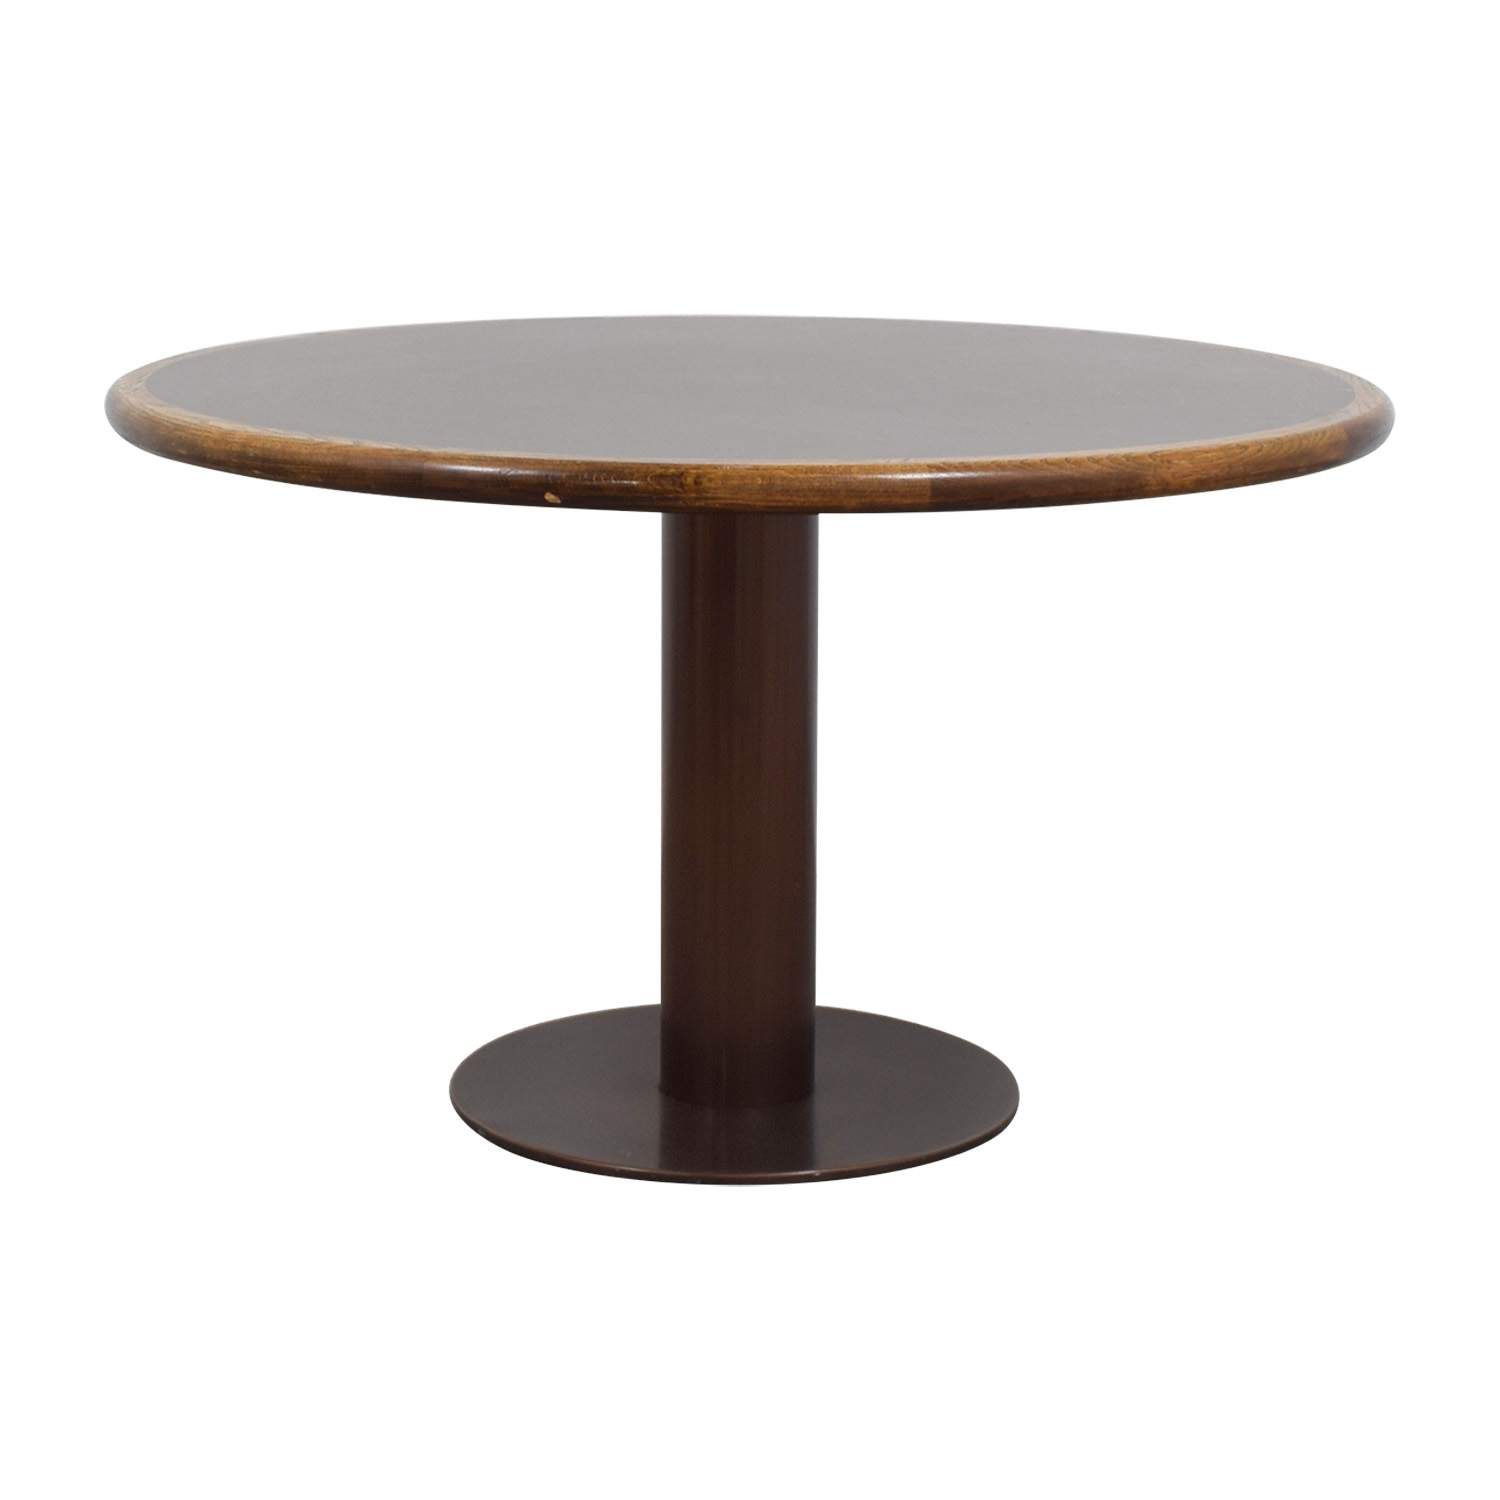 Round Wood & Metal Dining Table / Tables